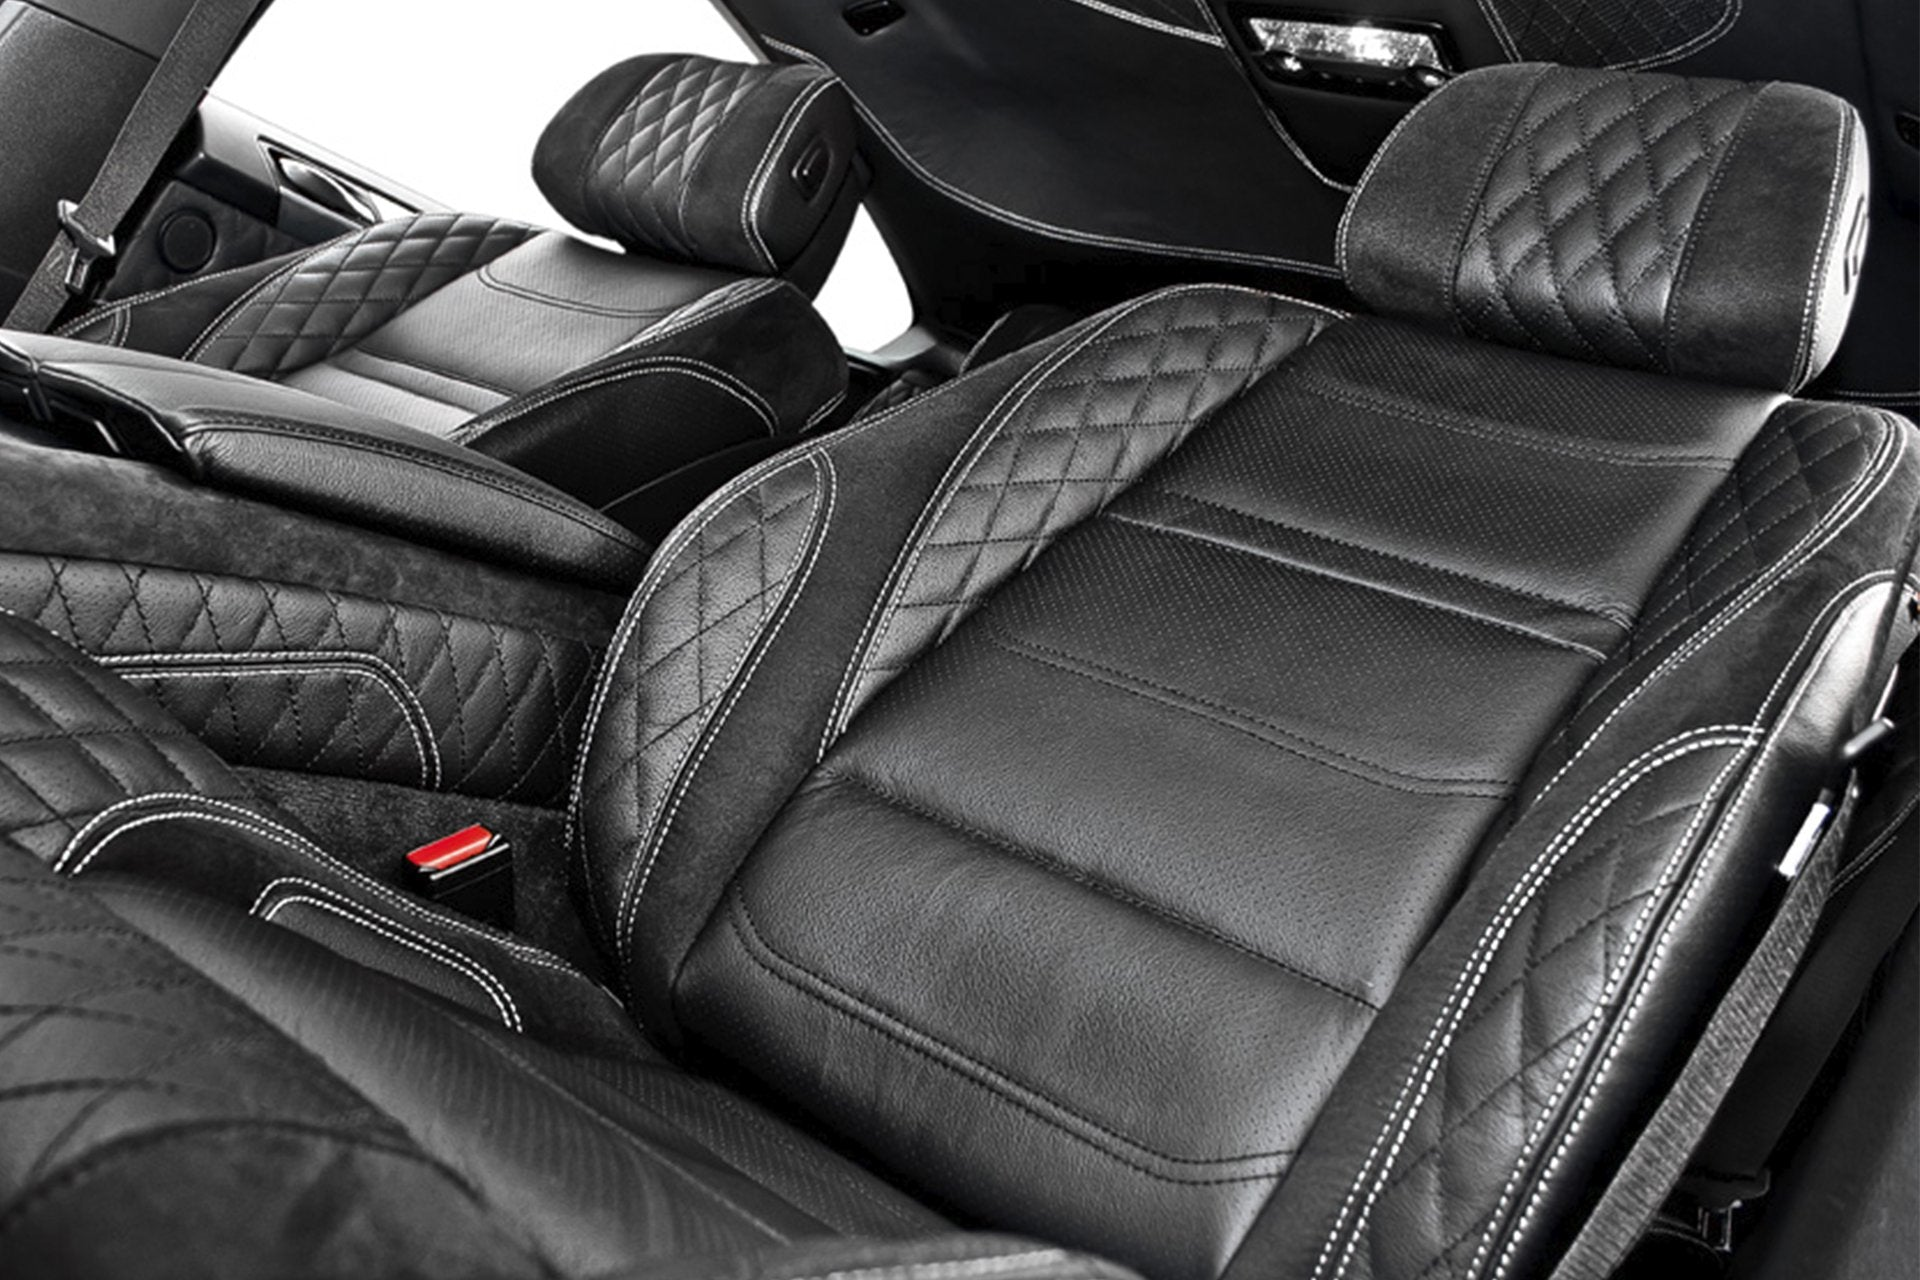 Bmw X6 (2008-2014) Leather Interior by Kahn - Image 1217